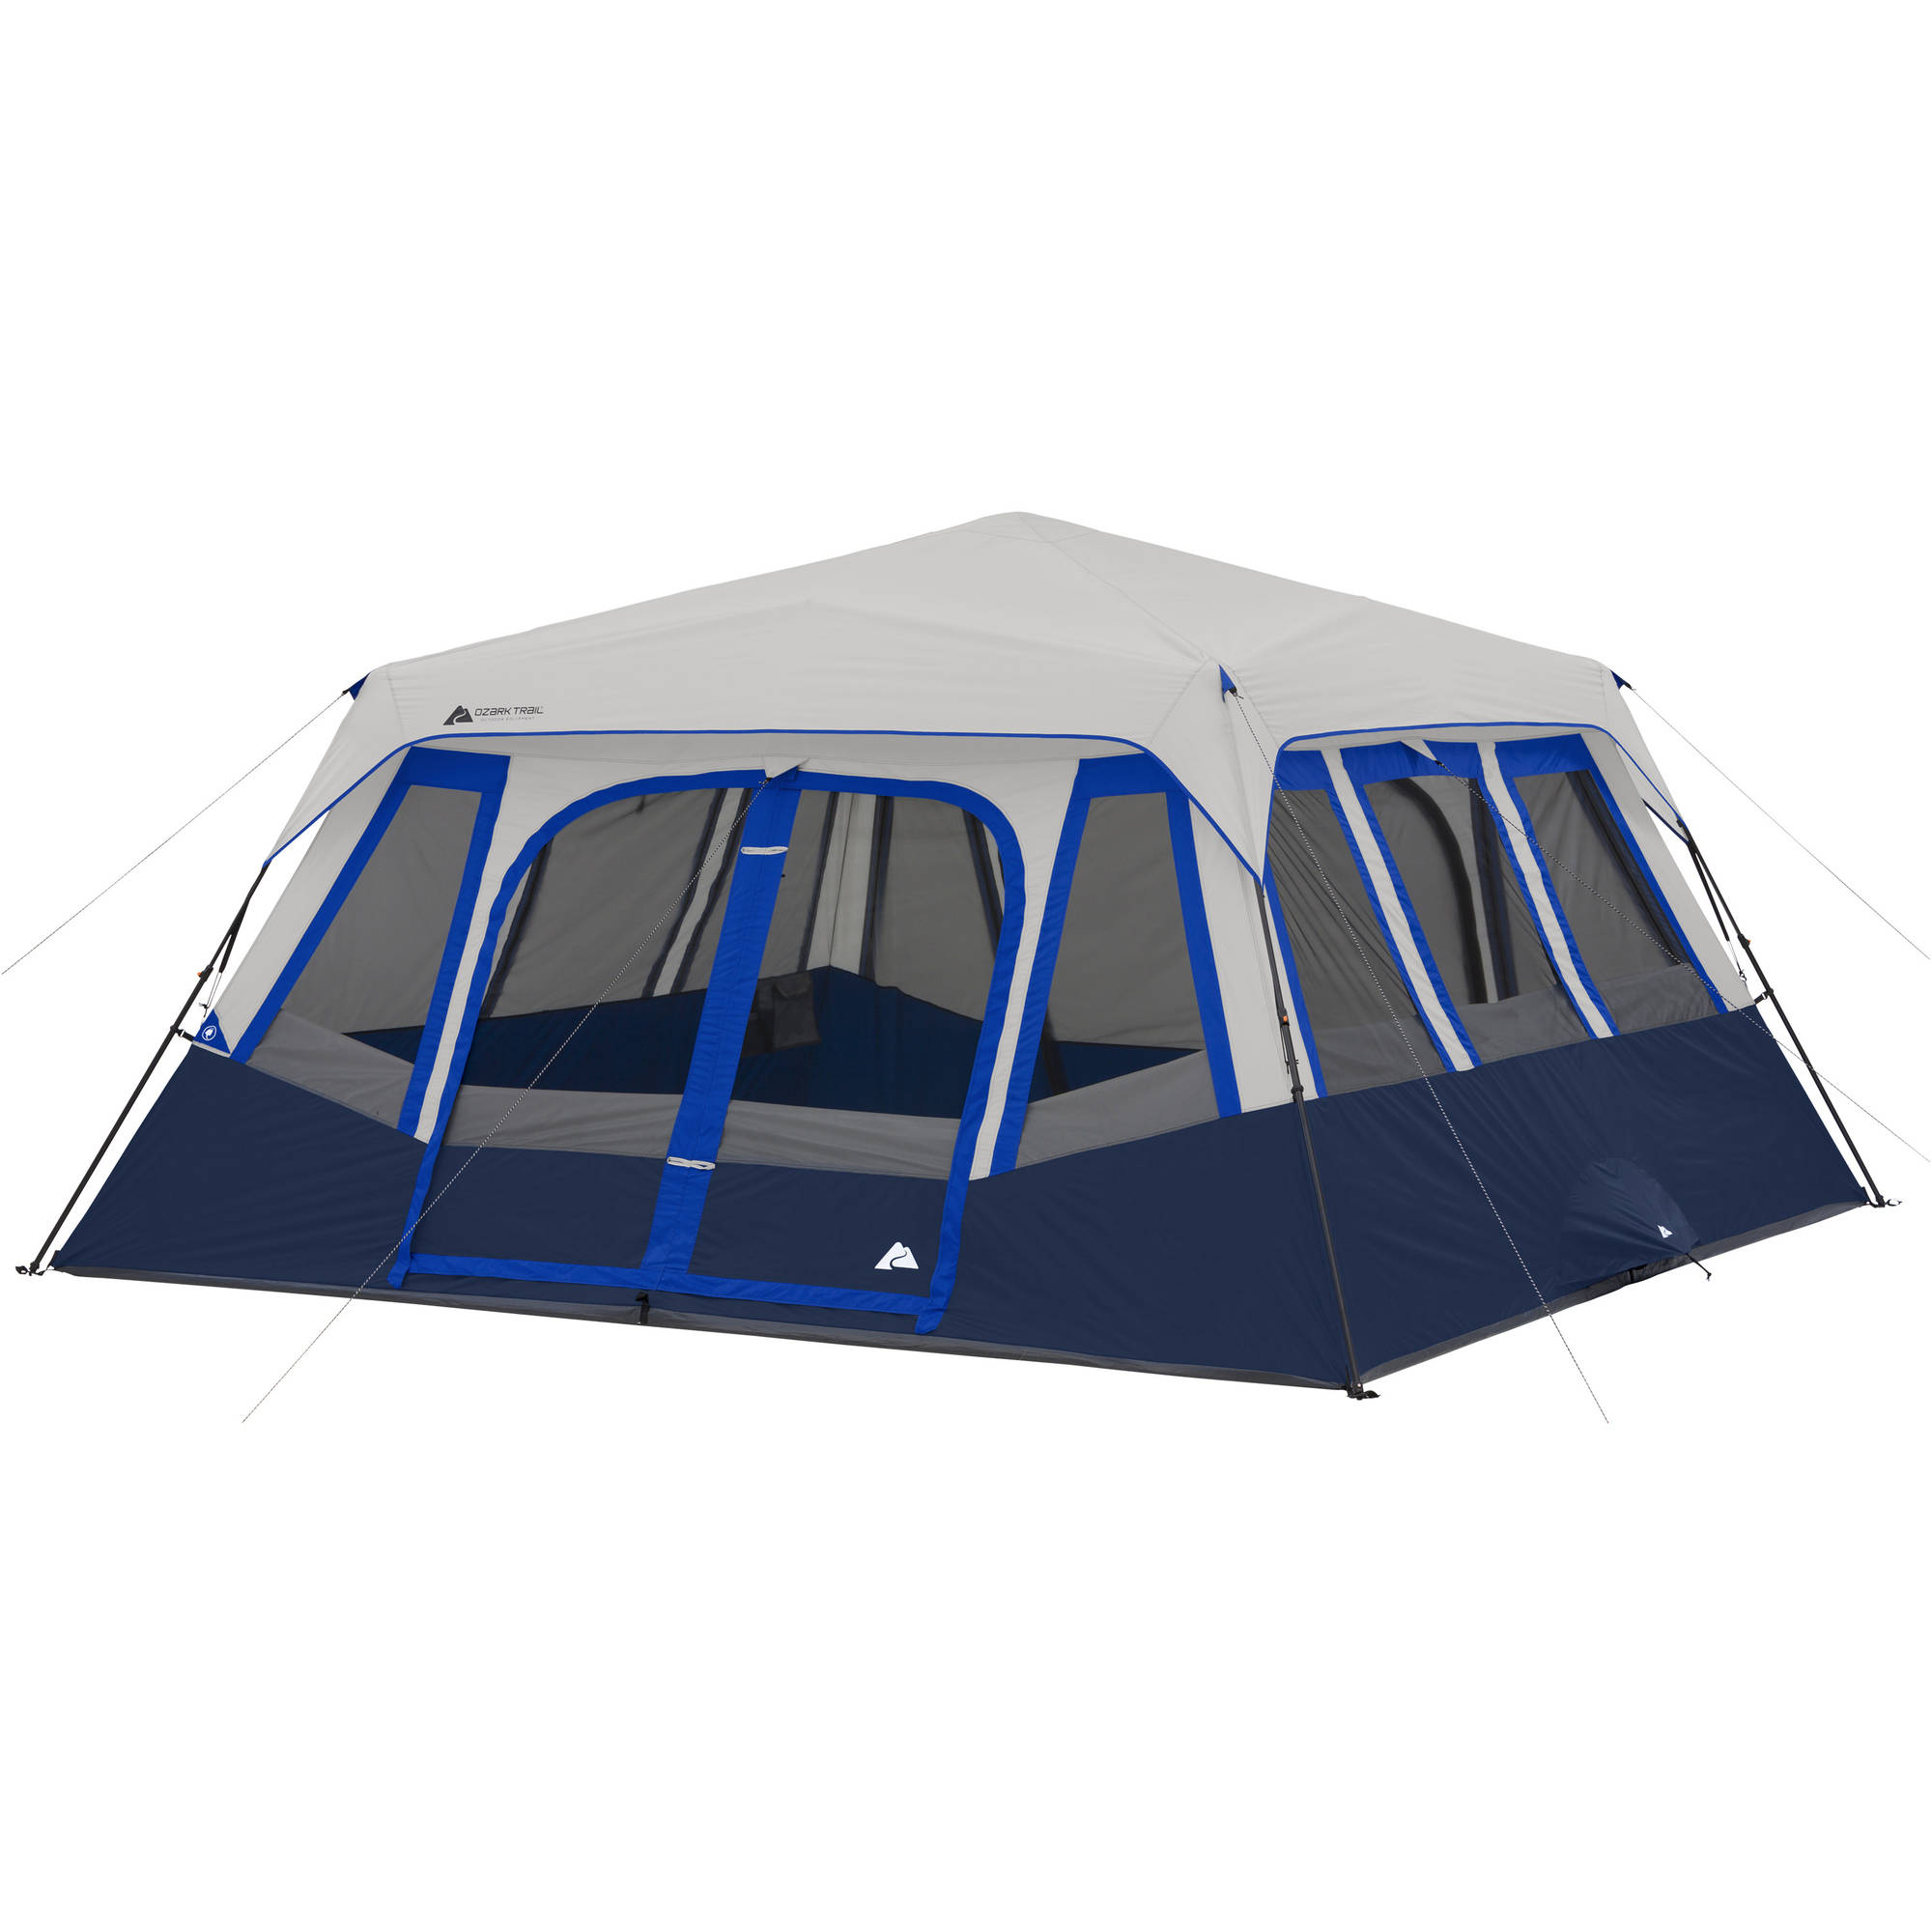 Ozark Trail 14-Person 2 Room Instant Cabin Tent  sc 1 st  Walmart & Ozark Trail 14-Person 2 Room Instant Cabin Tent - Walmart.com